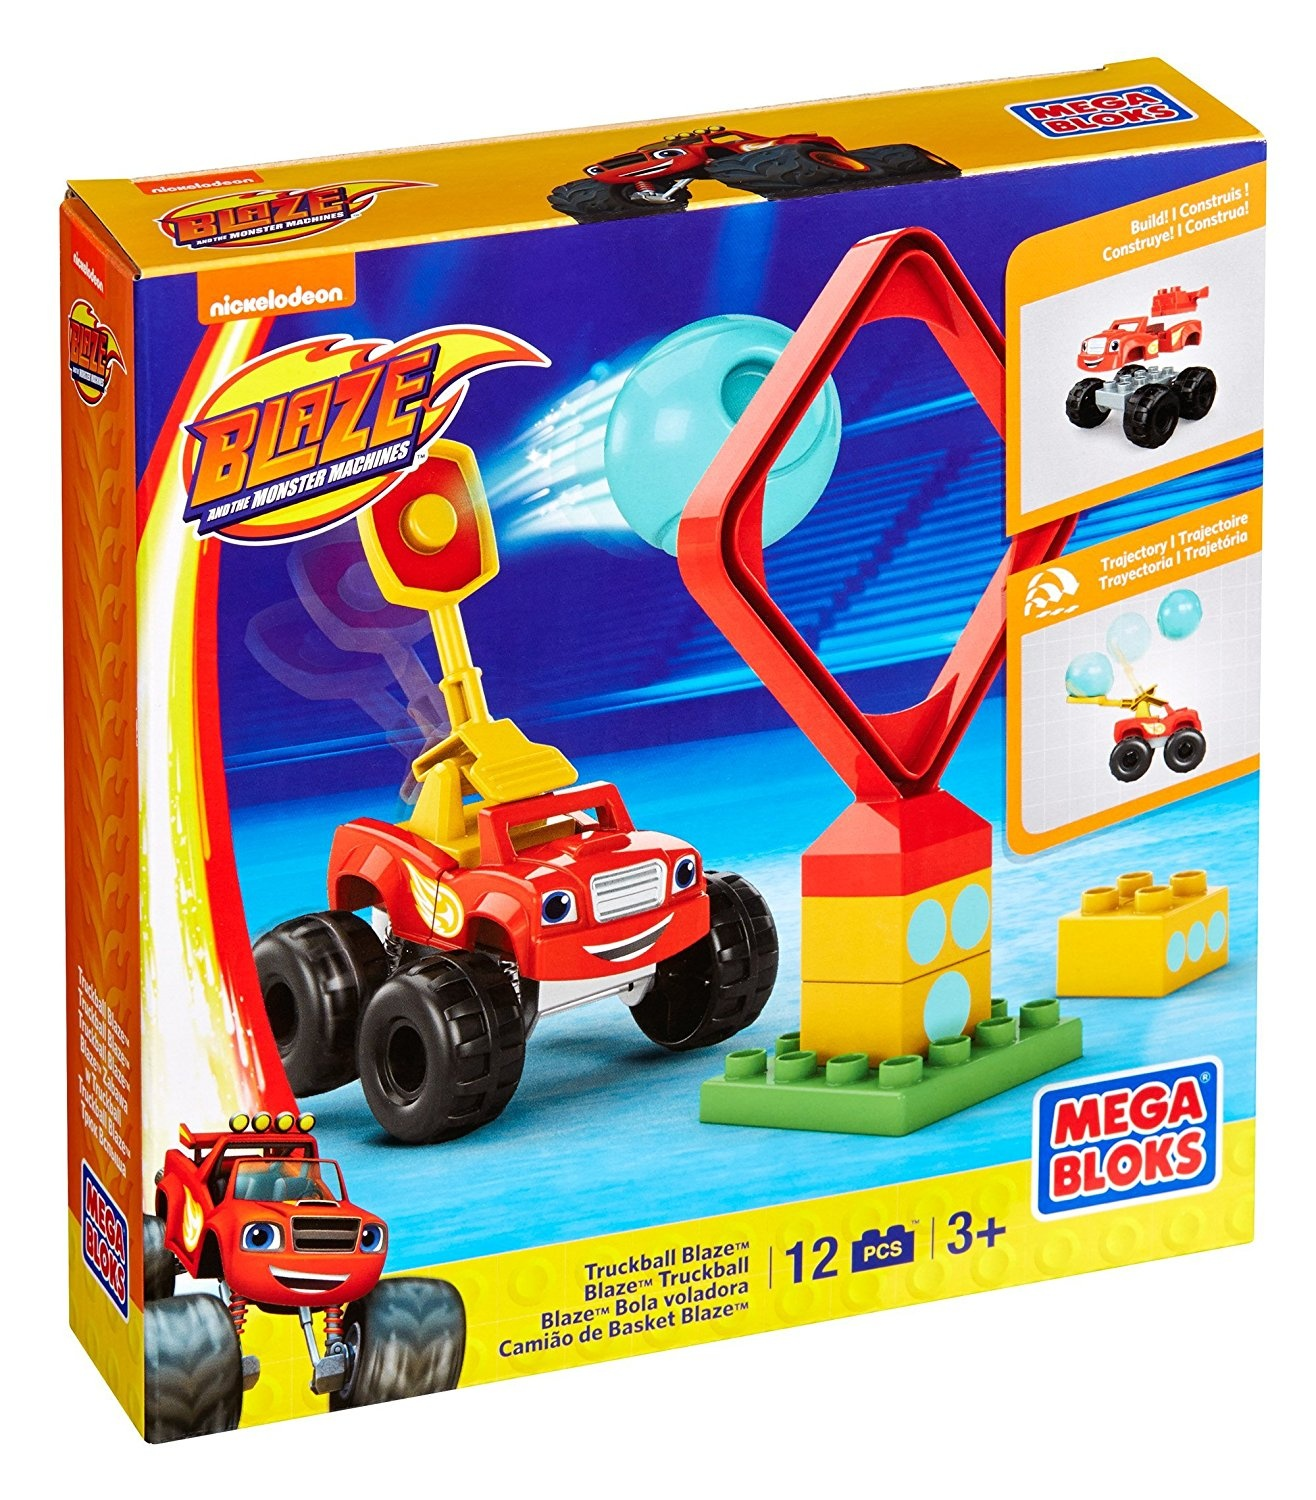 Mega Bloks Nickelodeon Blaze And The Monster Machines Truckball